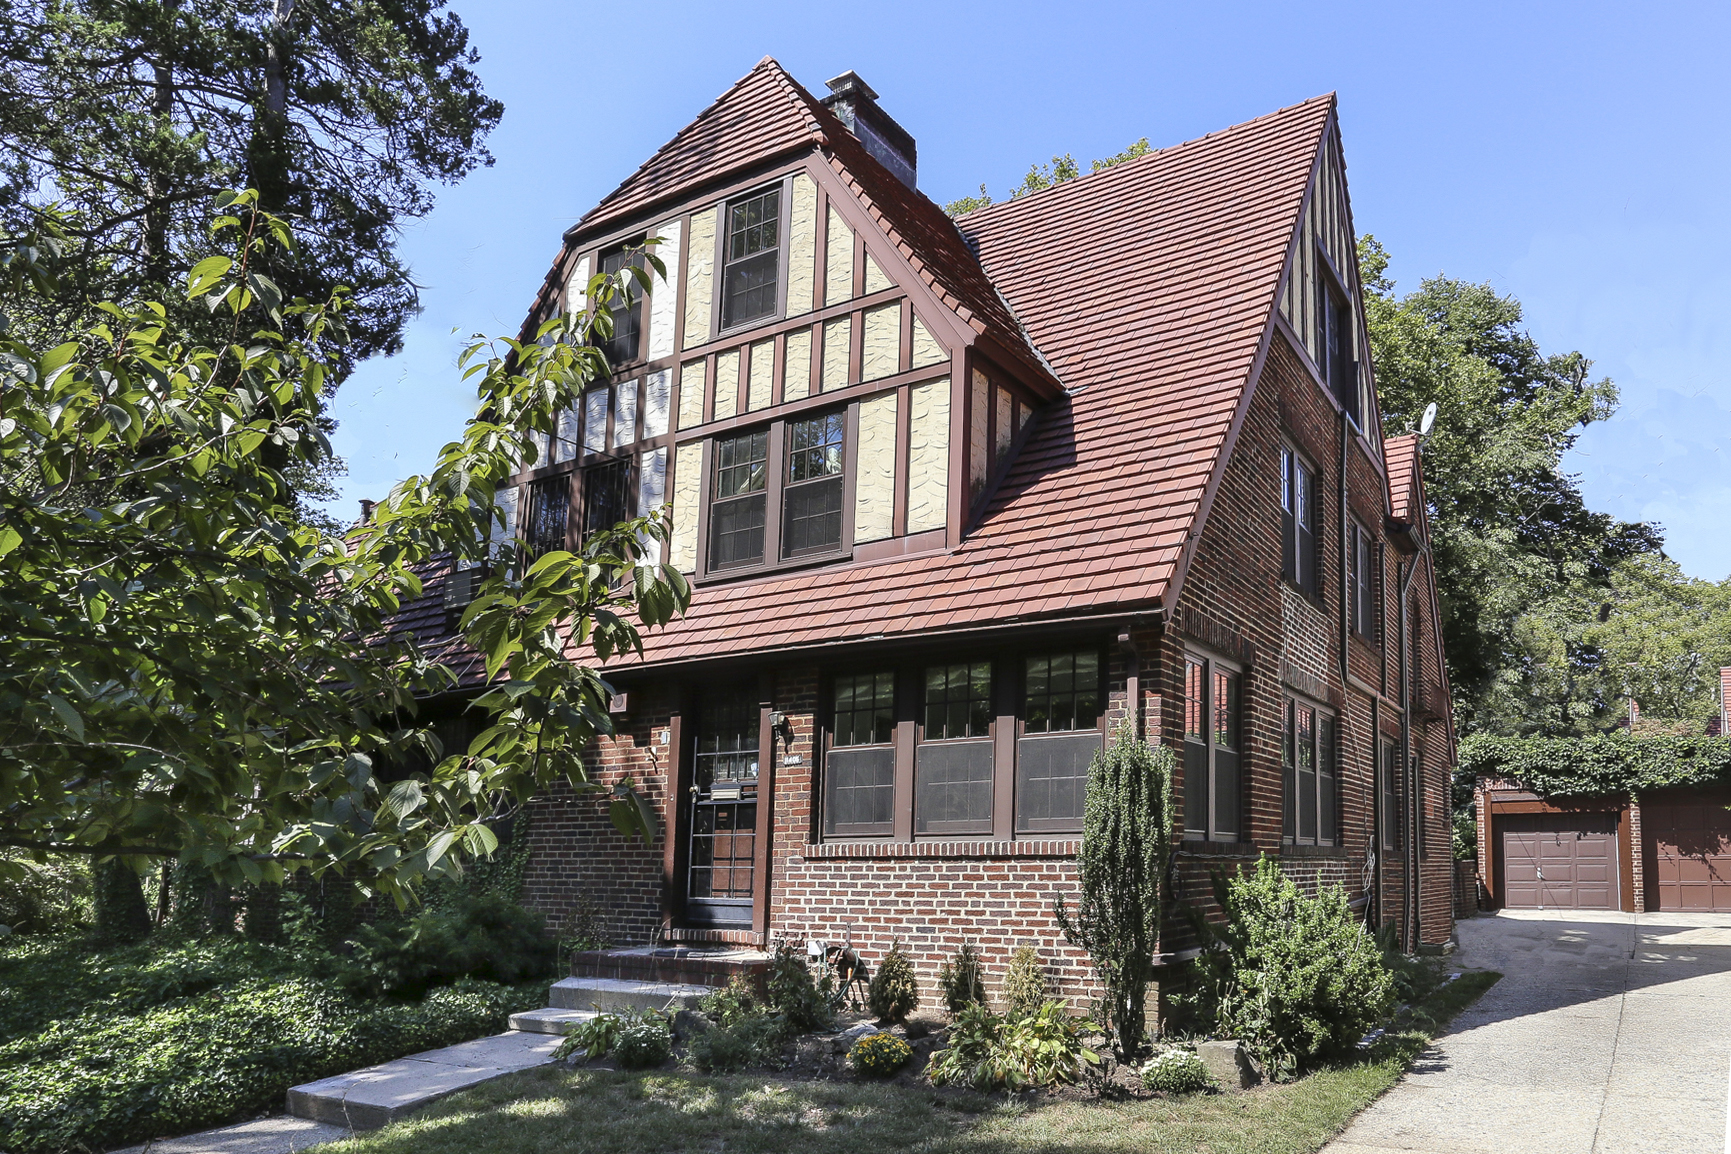 """Single Family Home for Sale at """"FULLY RENOVATED GARDENS TUDOR"""" 114-05 Union Turnpike, Forest Hills Gardens, Forest Hills, New York 11375 United States"""